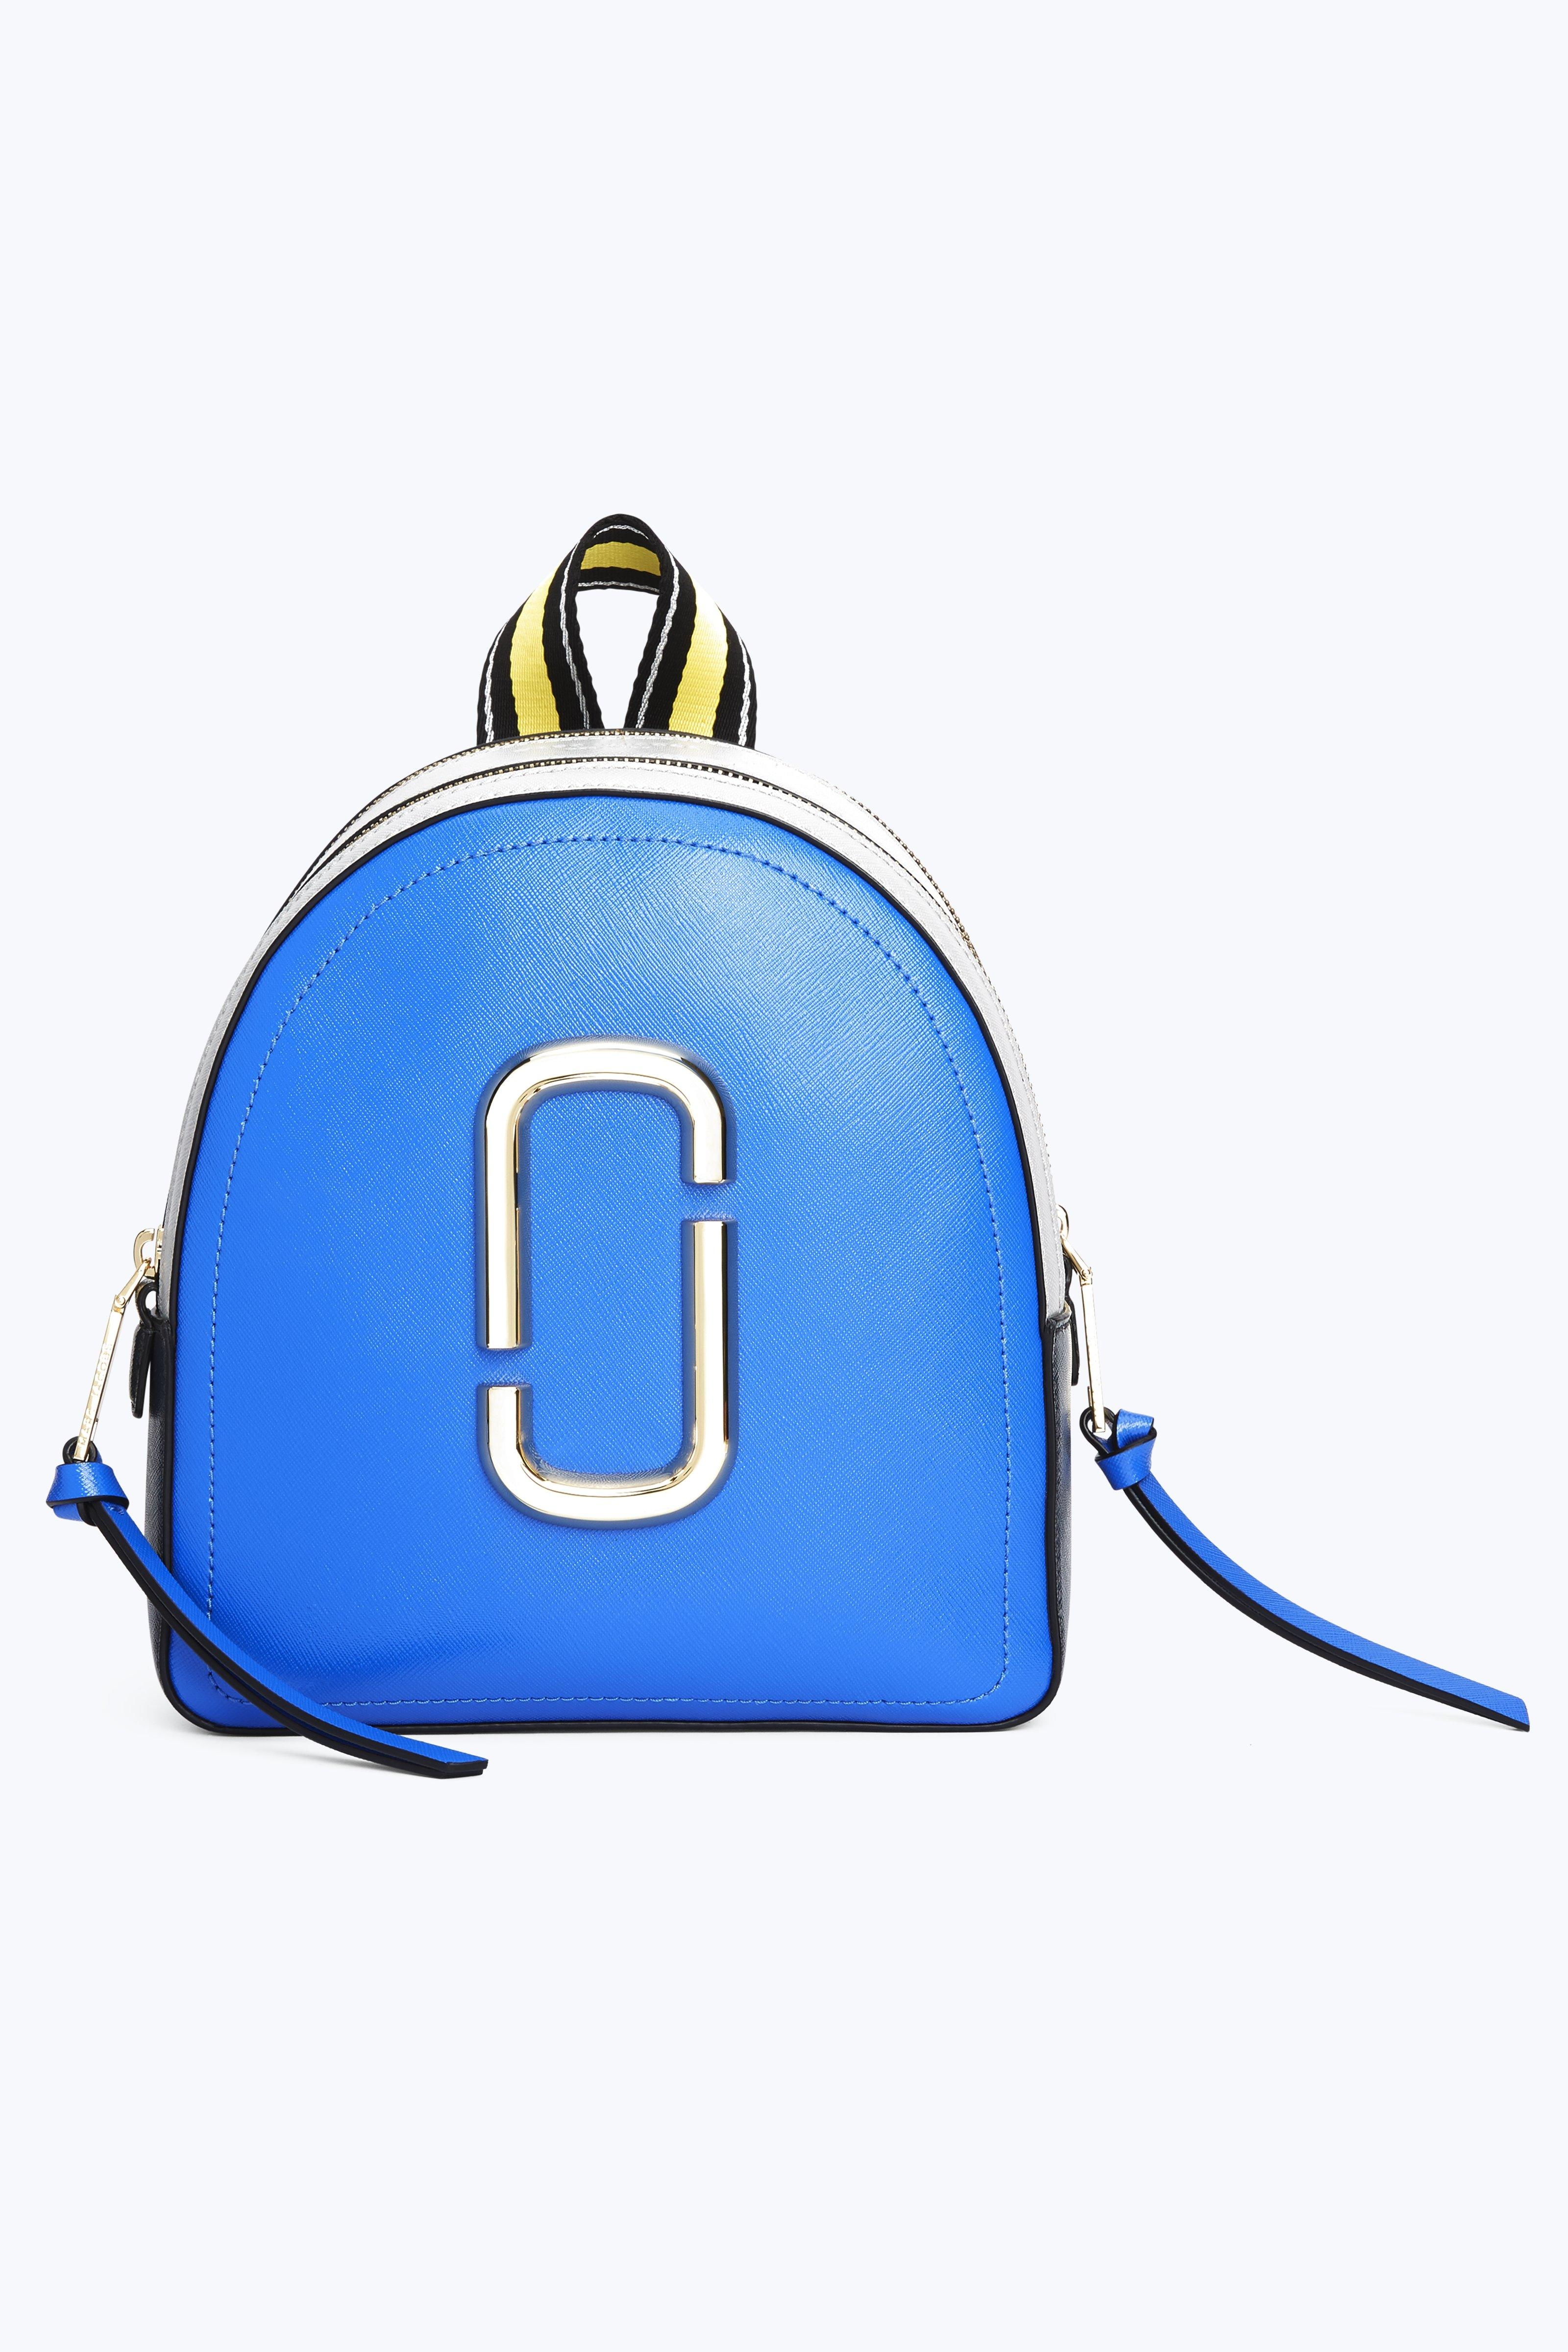 Pack Shot Leather Backpack - Blue in Dazzling Blue Multi